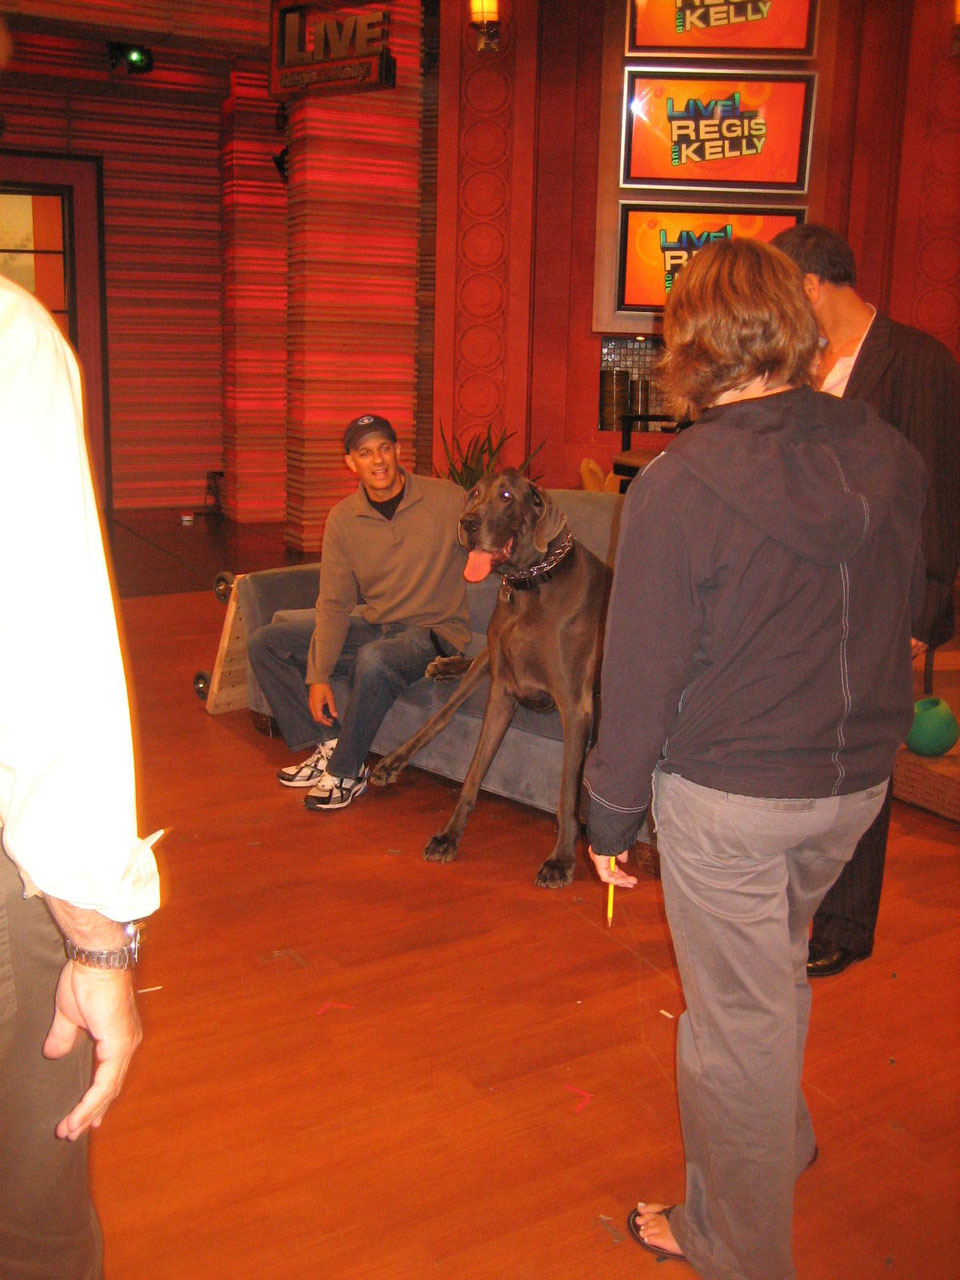 George during a live broadcast with Regis and Kelly, New York